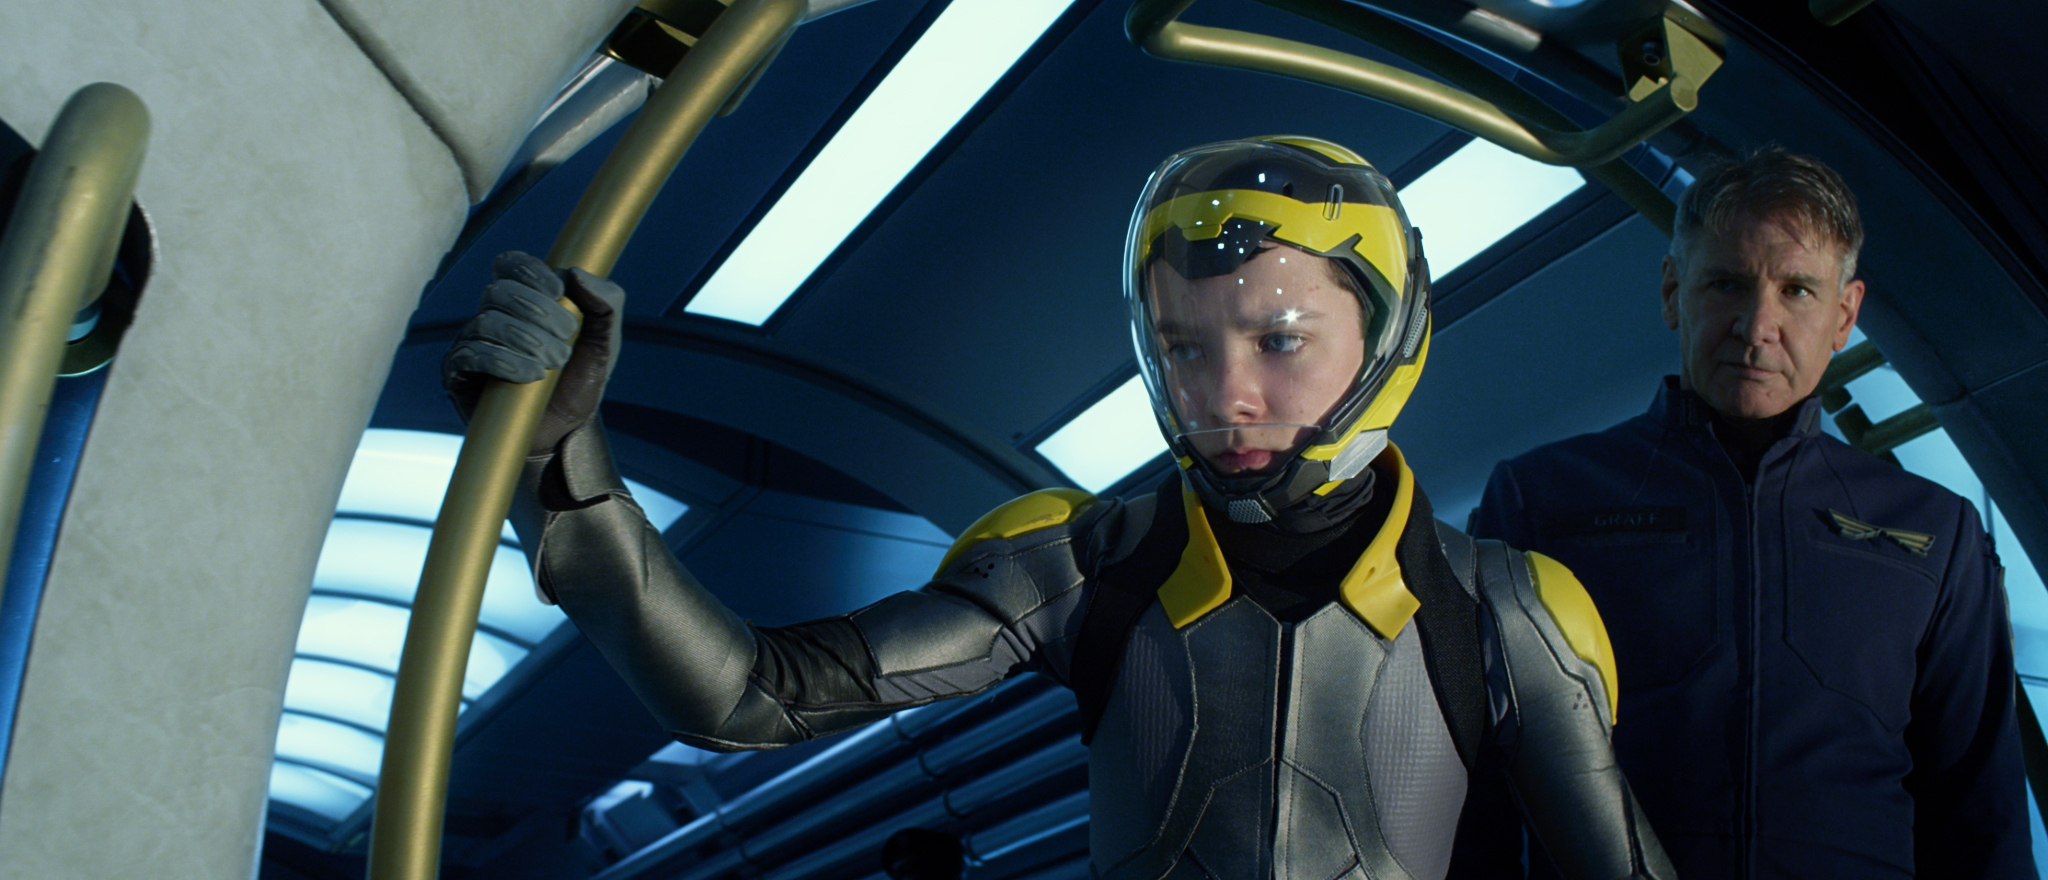 Asa Butterfield, left, and Harrison Ford star in 'Ender's Game' based on the popular novel by Orson Scott Card.